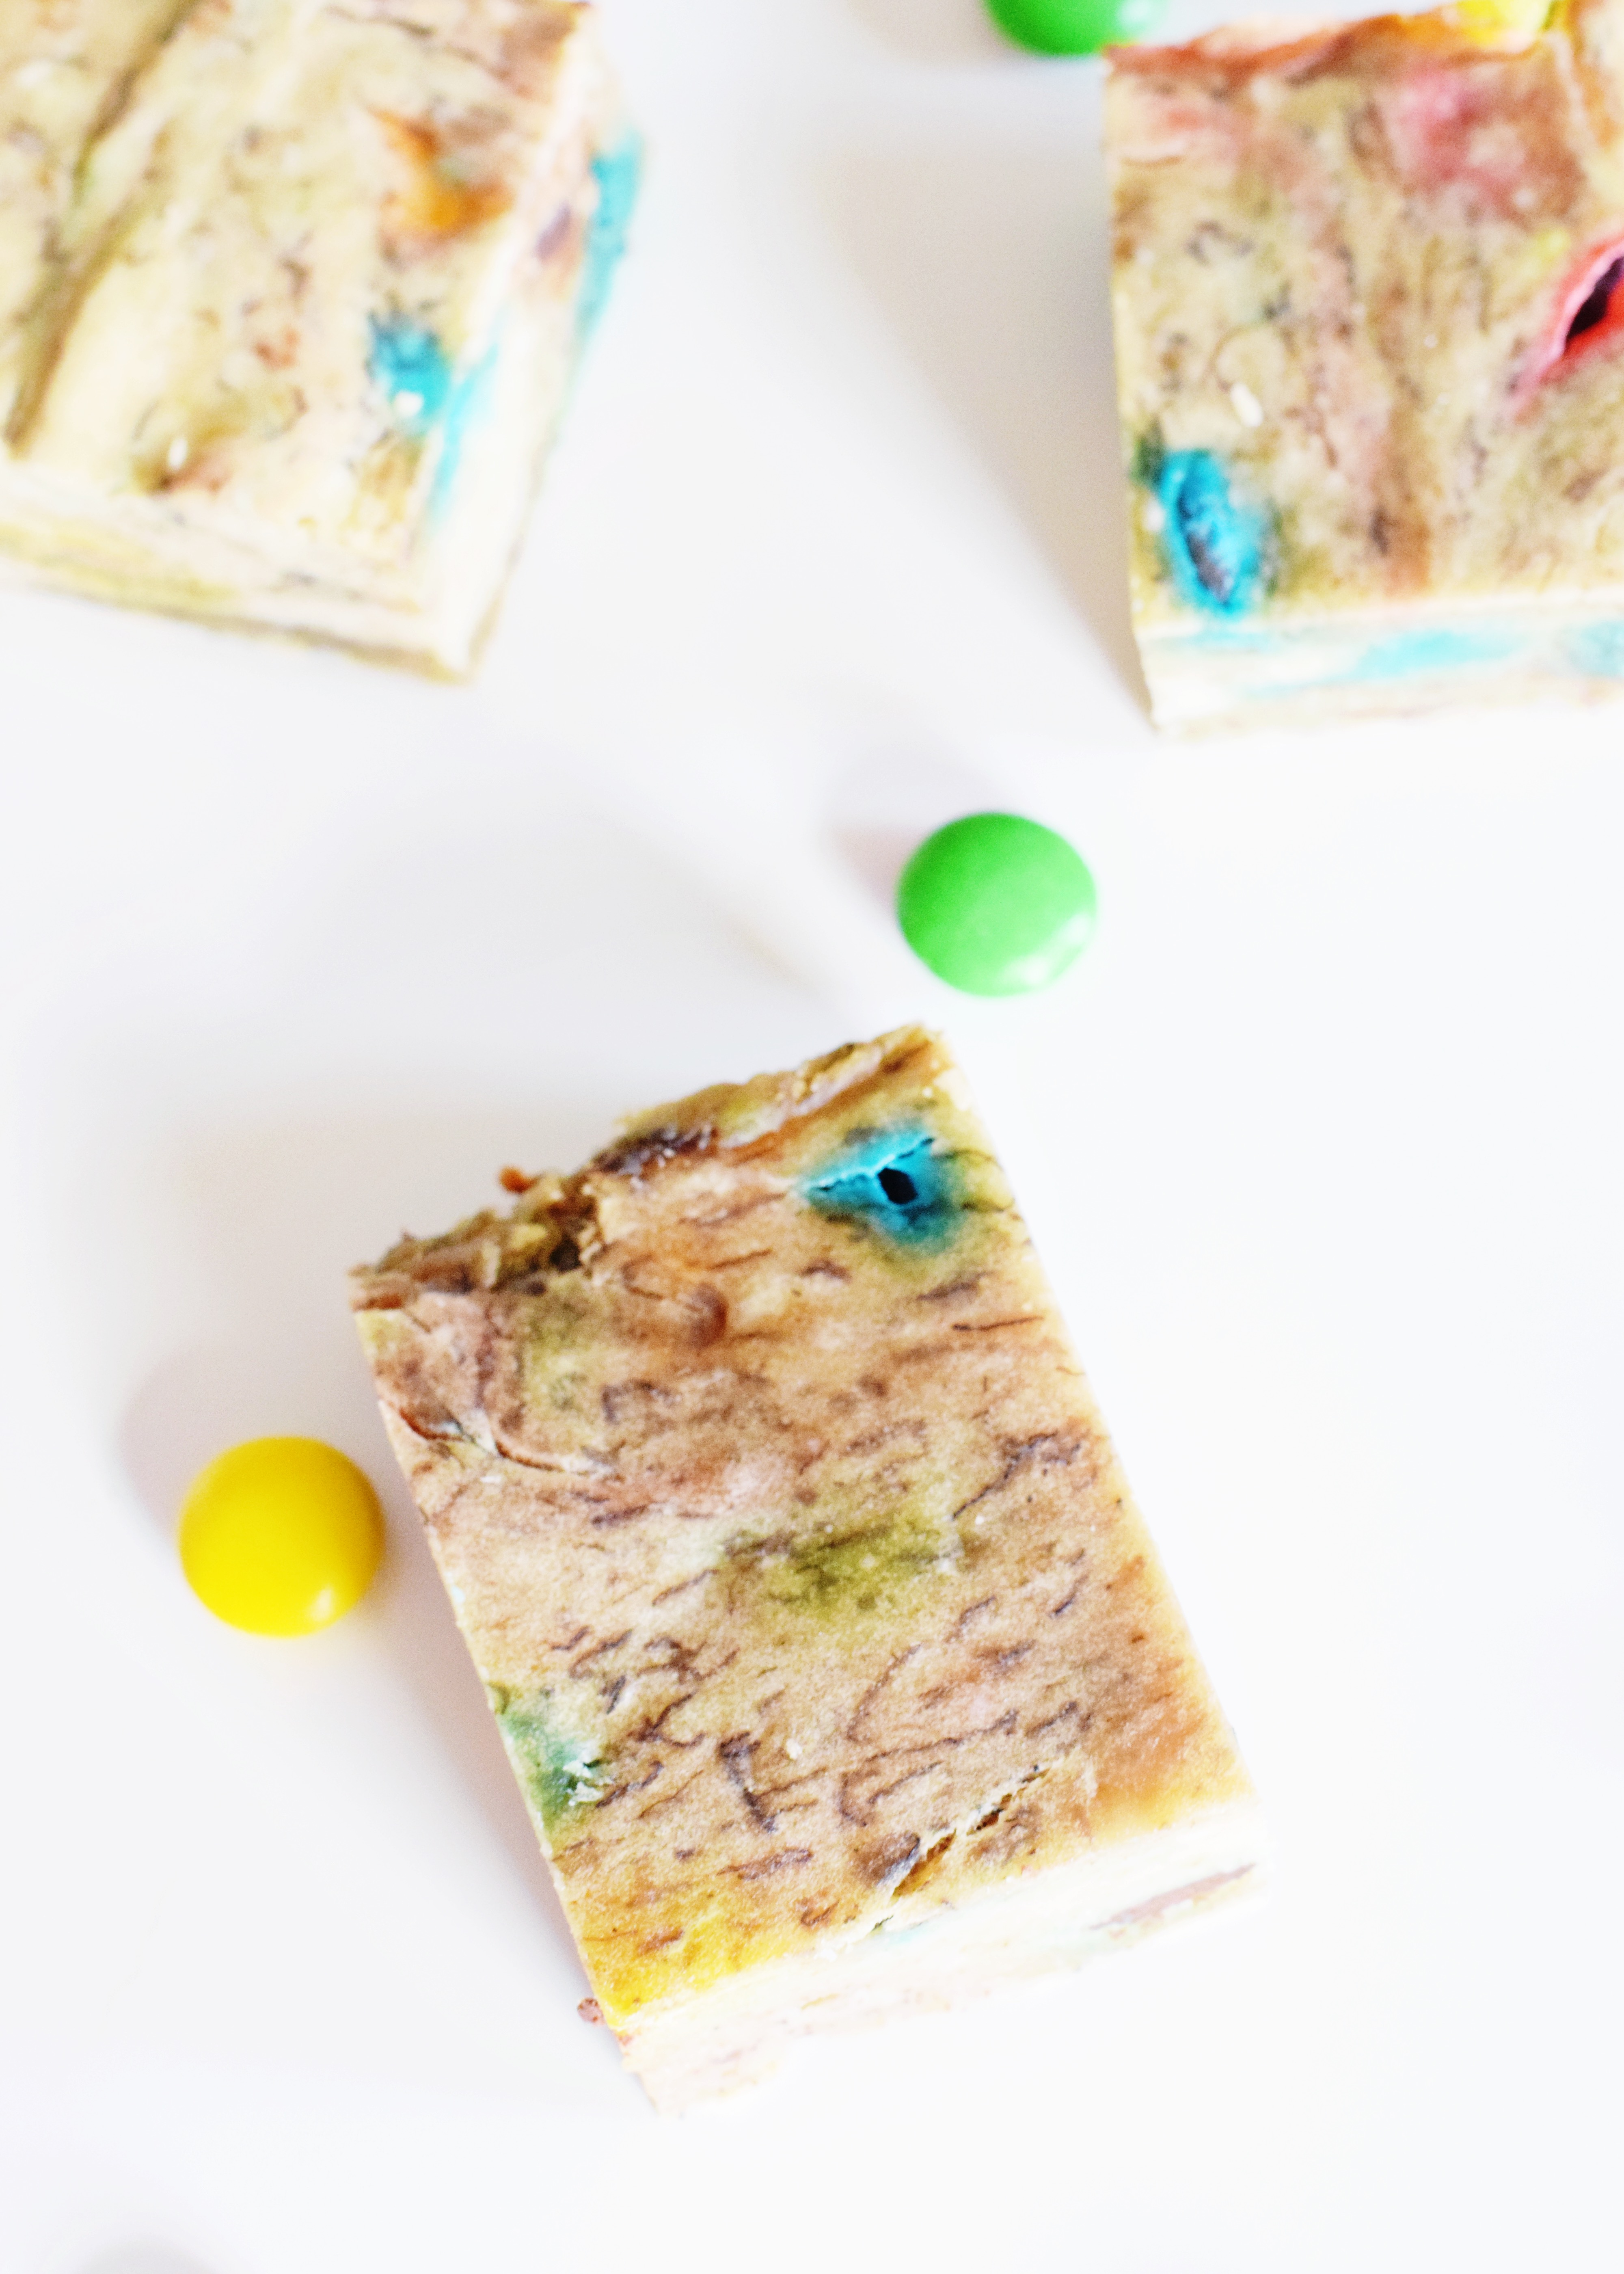 Banana Protein Bars - A special secret ingredient for moisture and protein! - CommuniKait